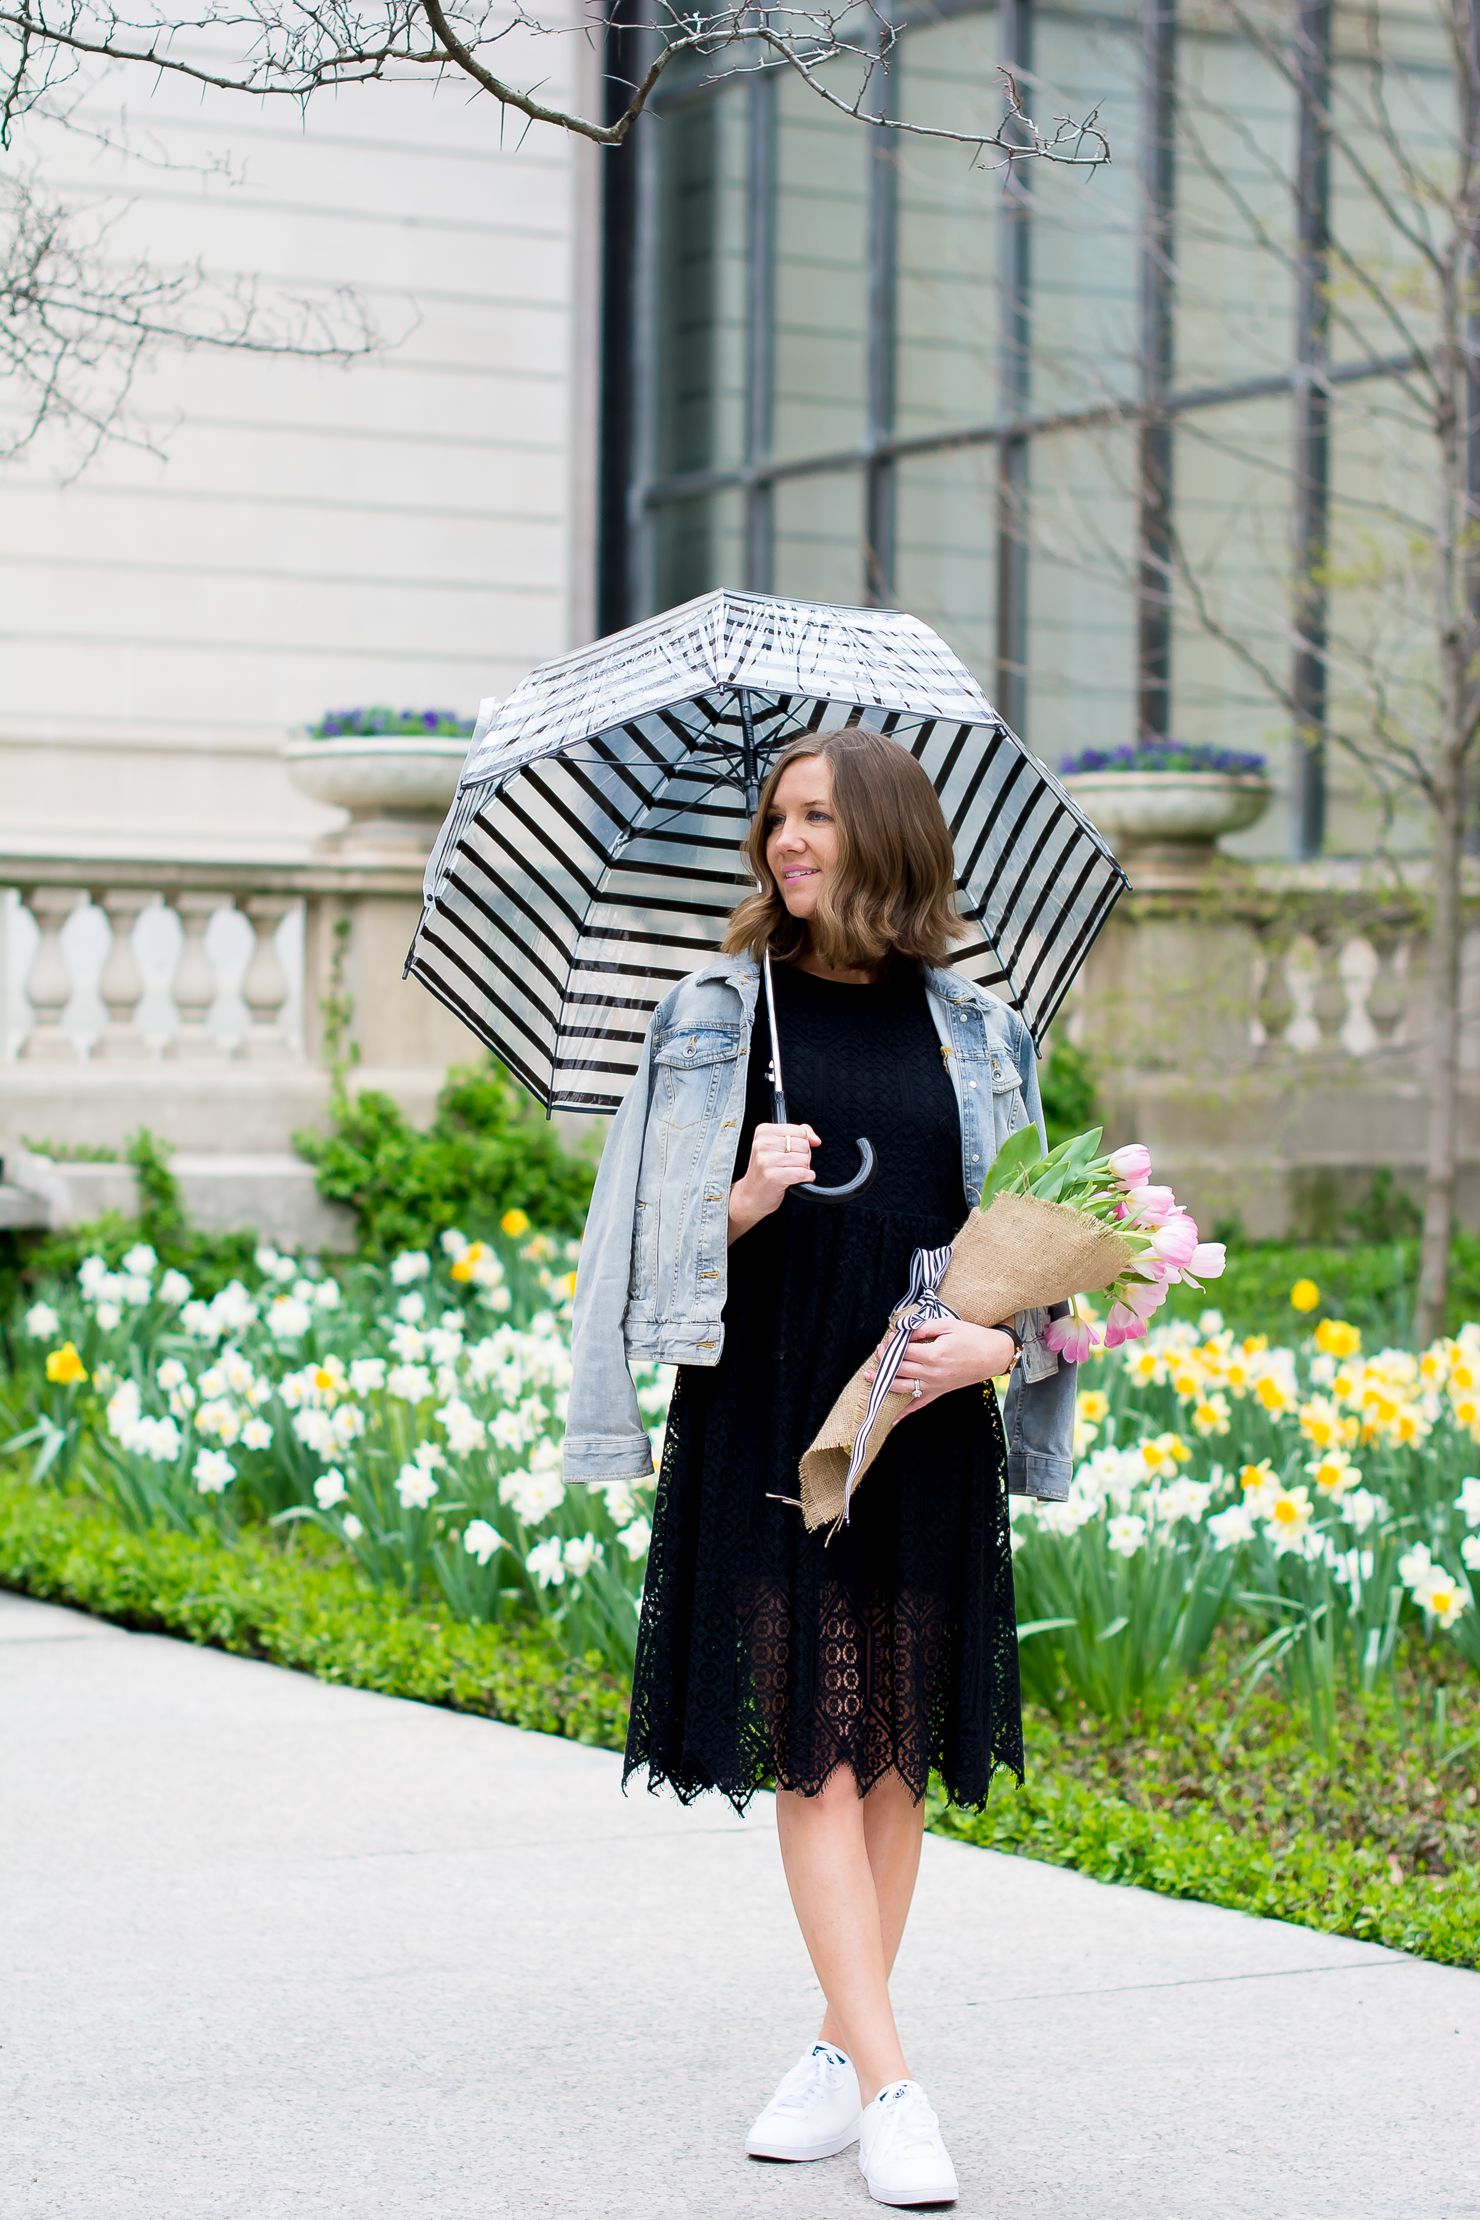 H&M-black-lace-midi-dress-merona-denim-jacket-adidas-neo-clean-sneakers-pink-tulips-striped-bubble-umbrella-chicago-art-institute